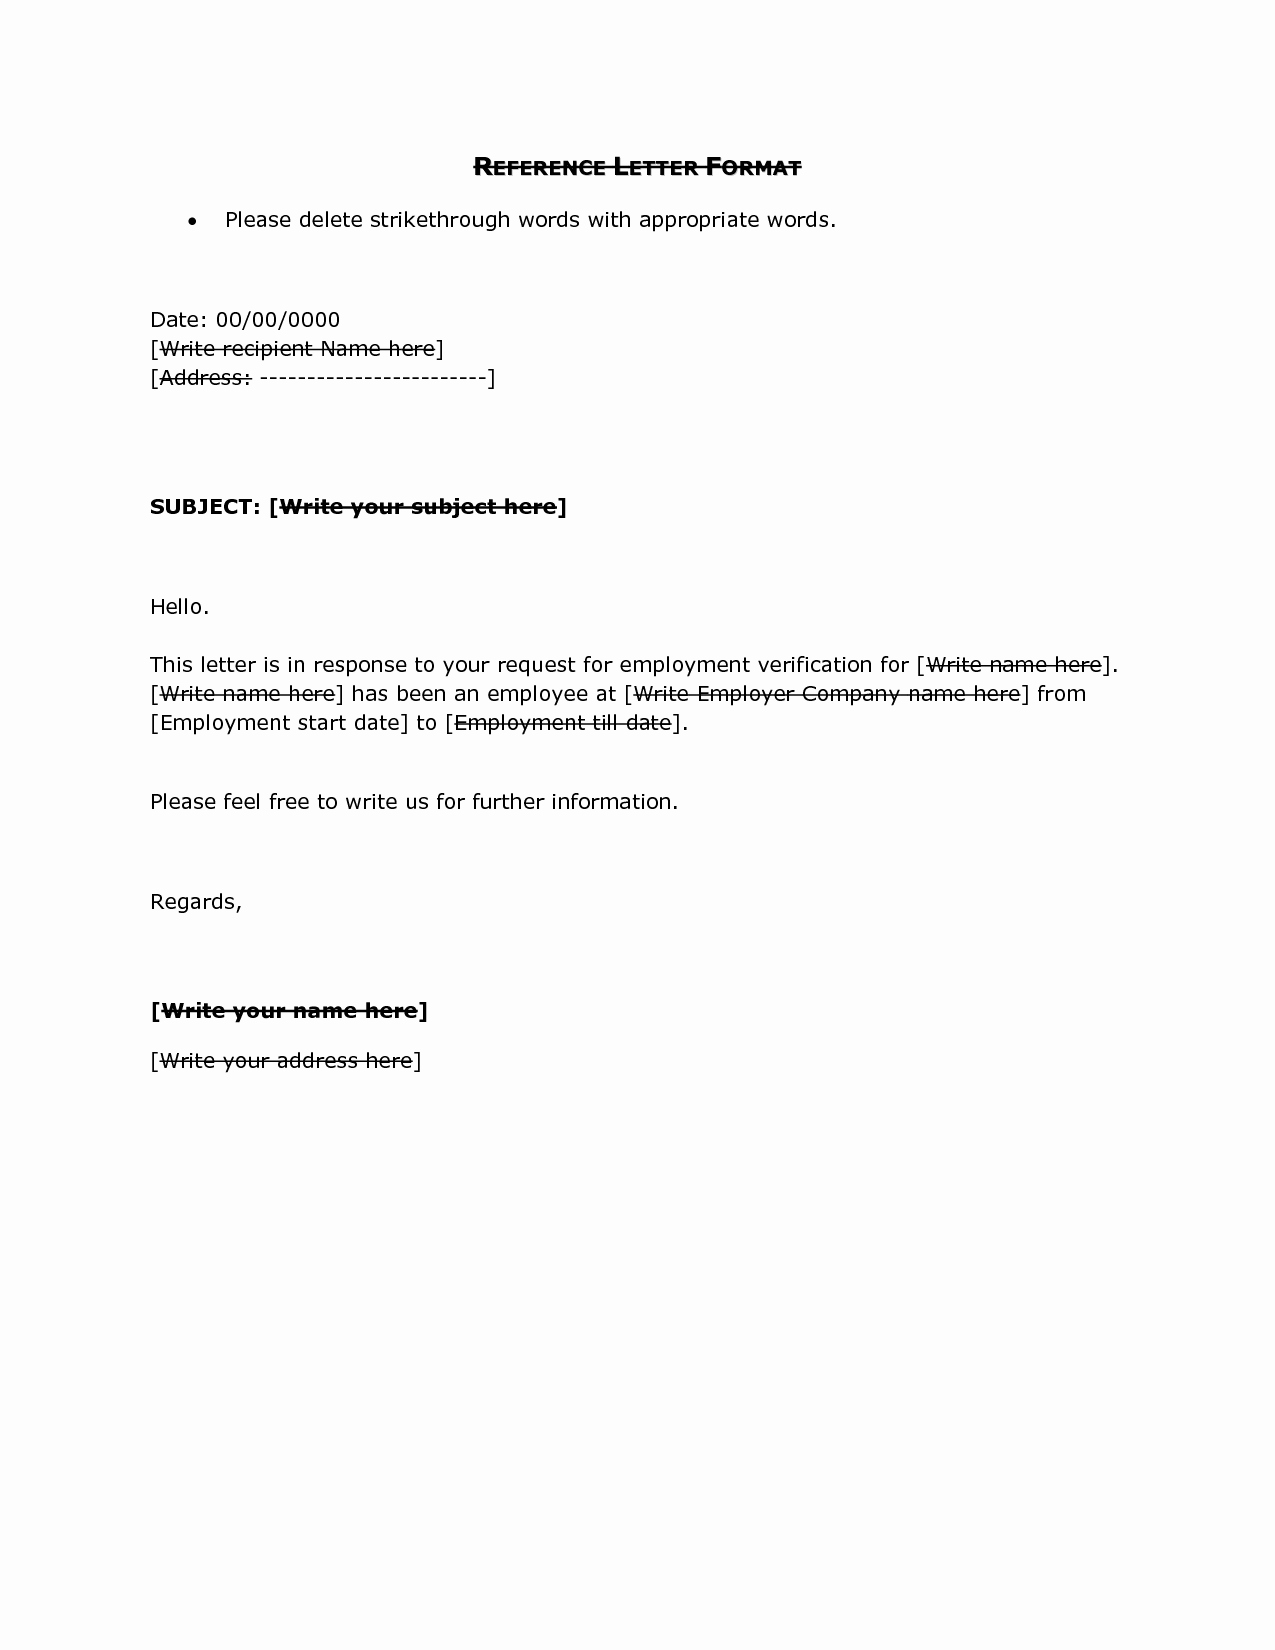 Sample Of Employment Reference Letter Luxury Reference Letter Sample Employment Portablegasgrillweber